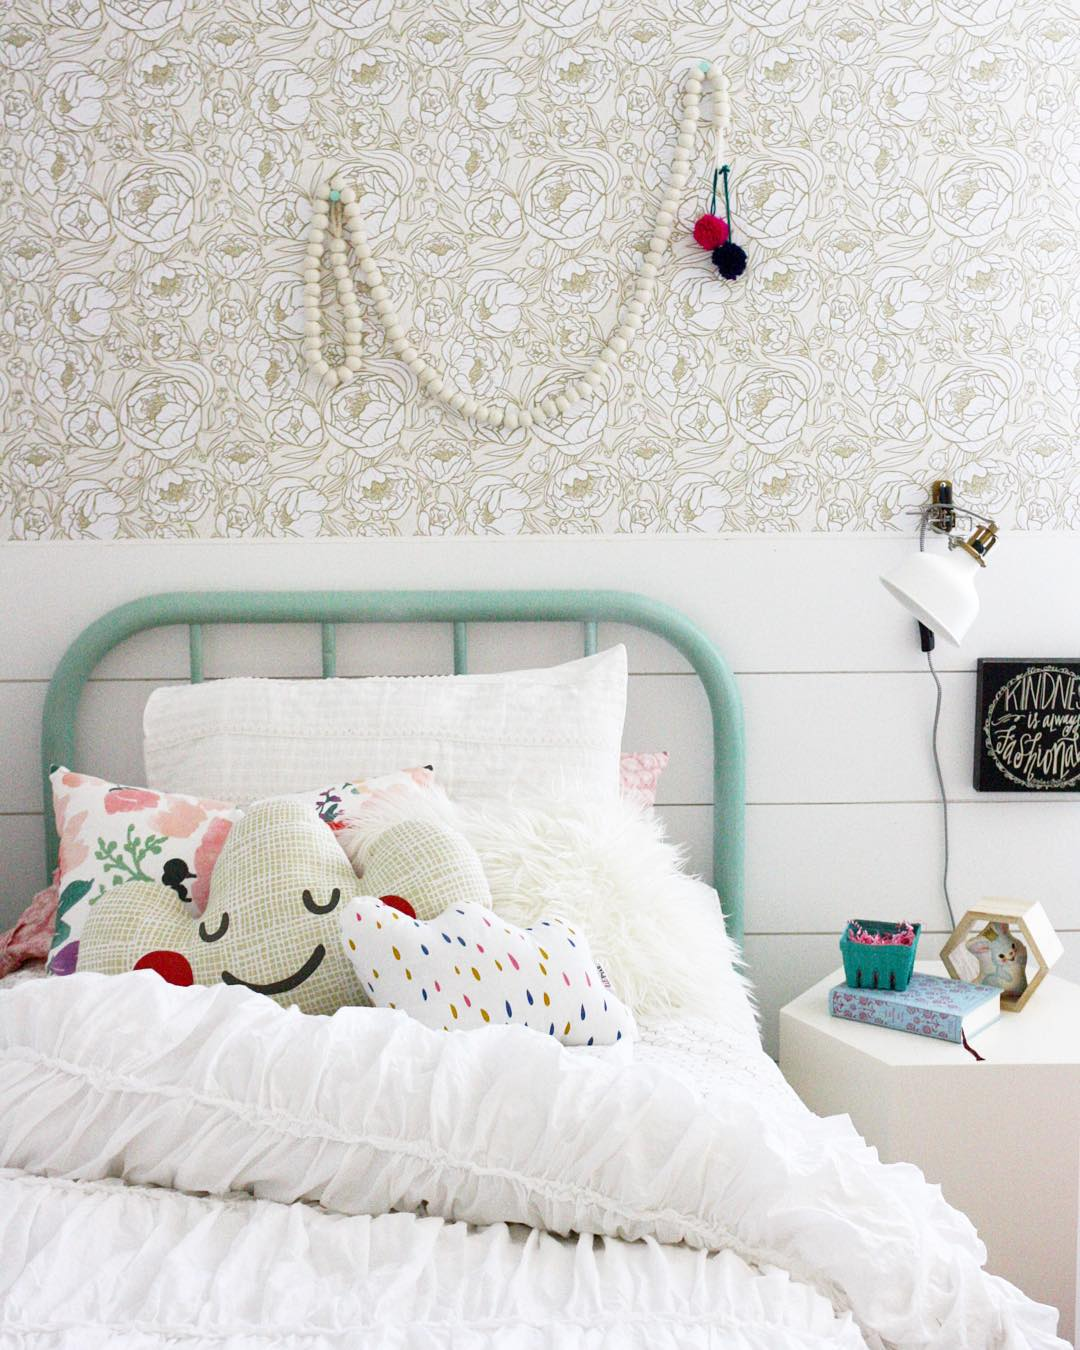 This adorable room is done by Anissa over at House Seven Blog using 1080x1350